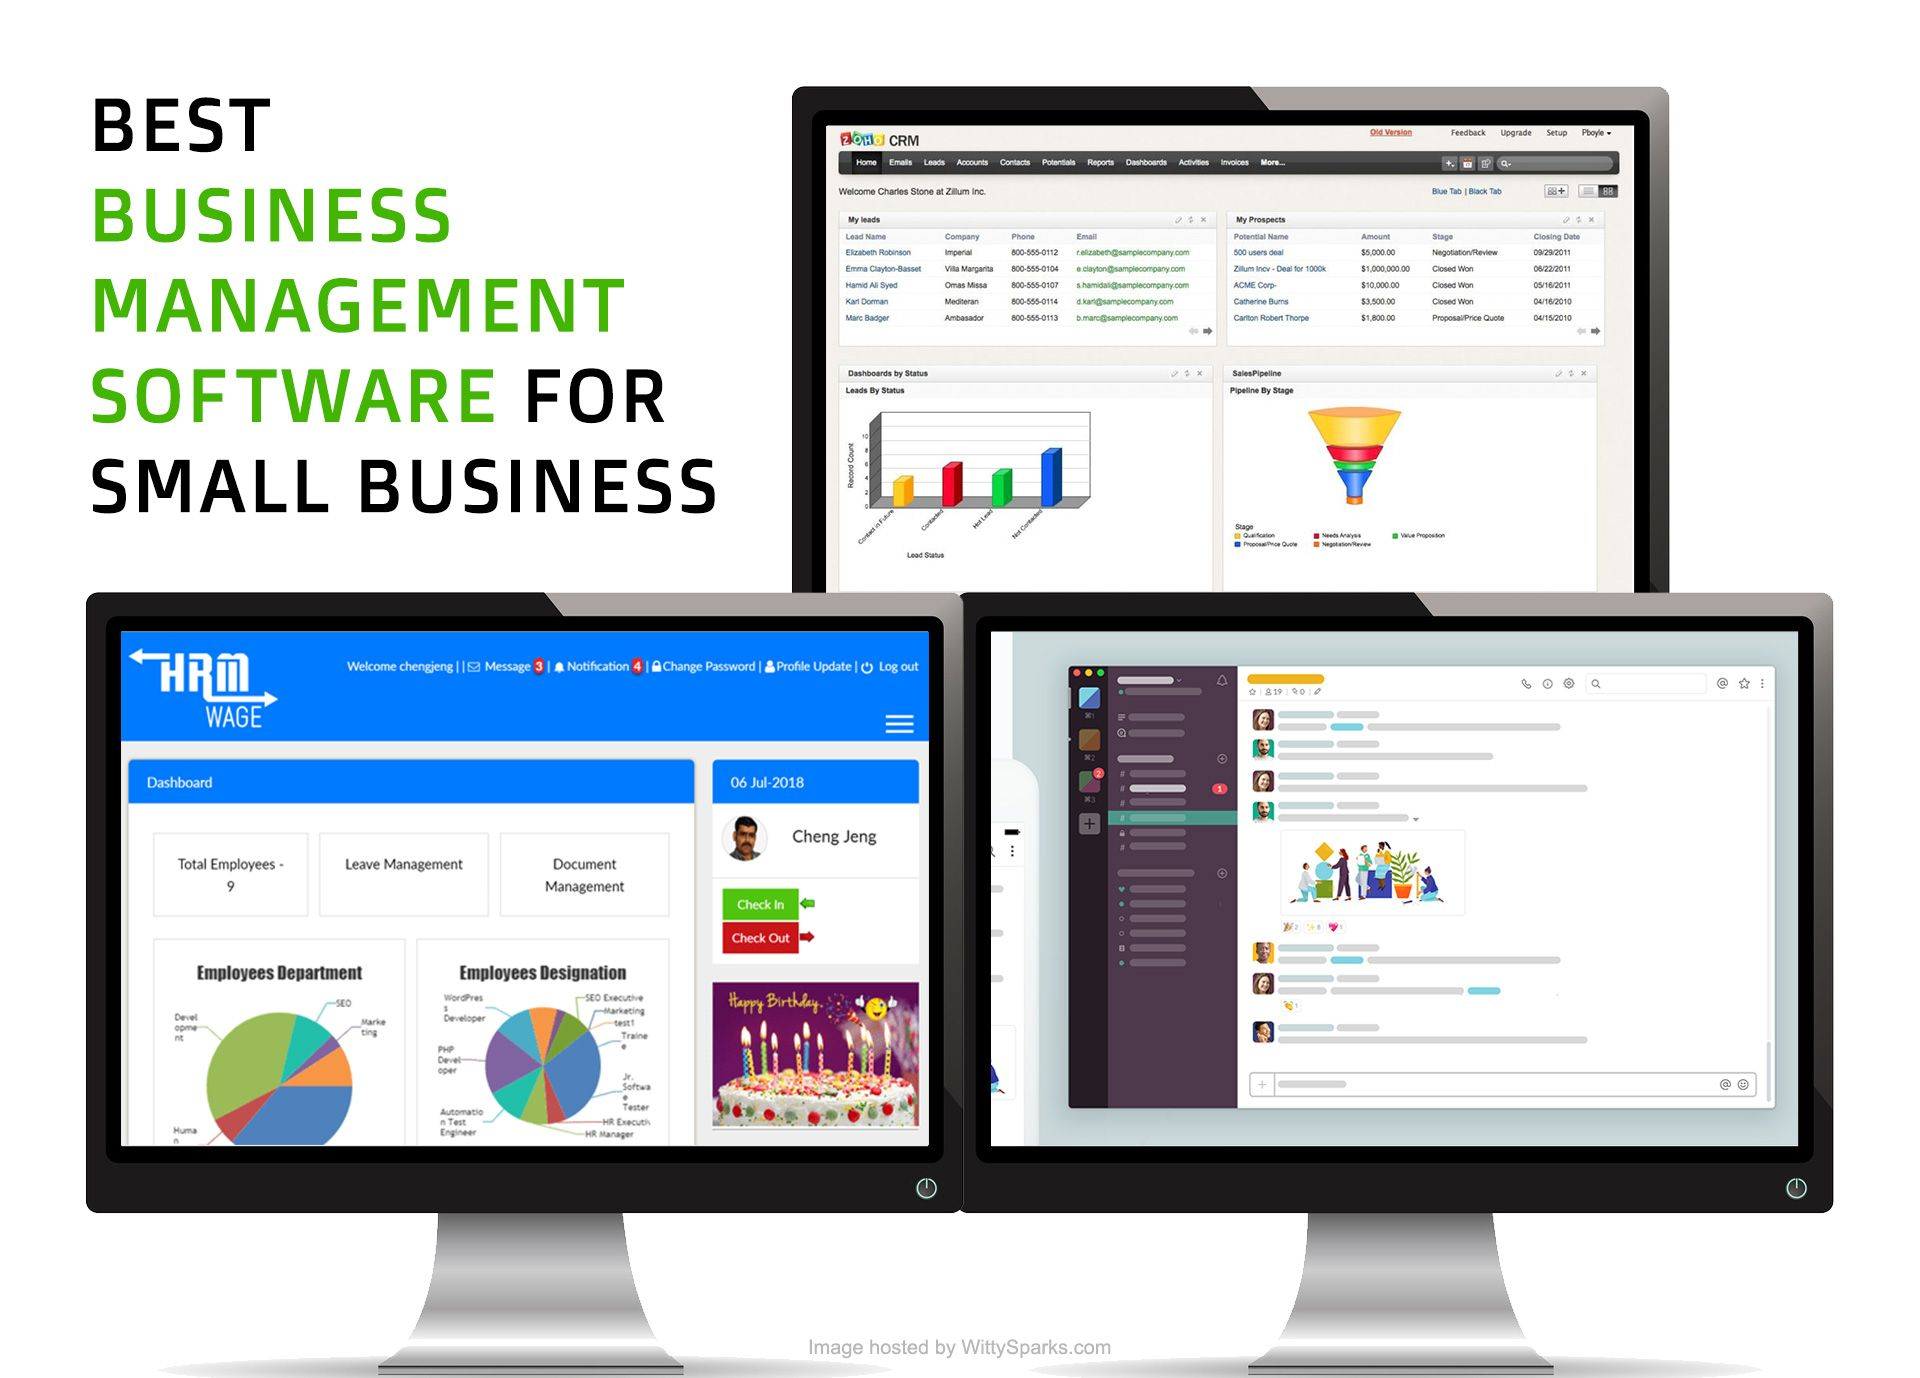 Best Business Management Software for Small Business